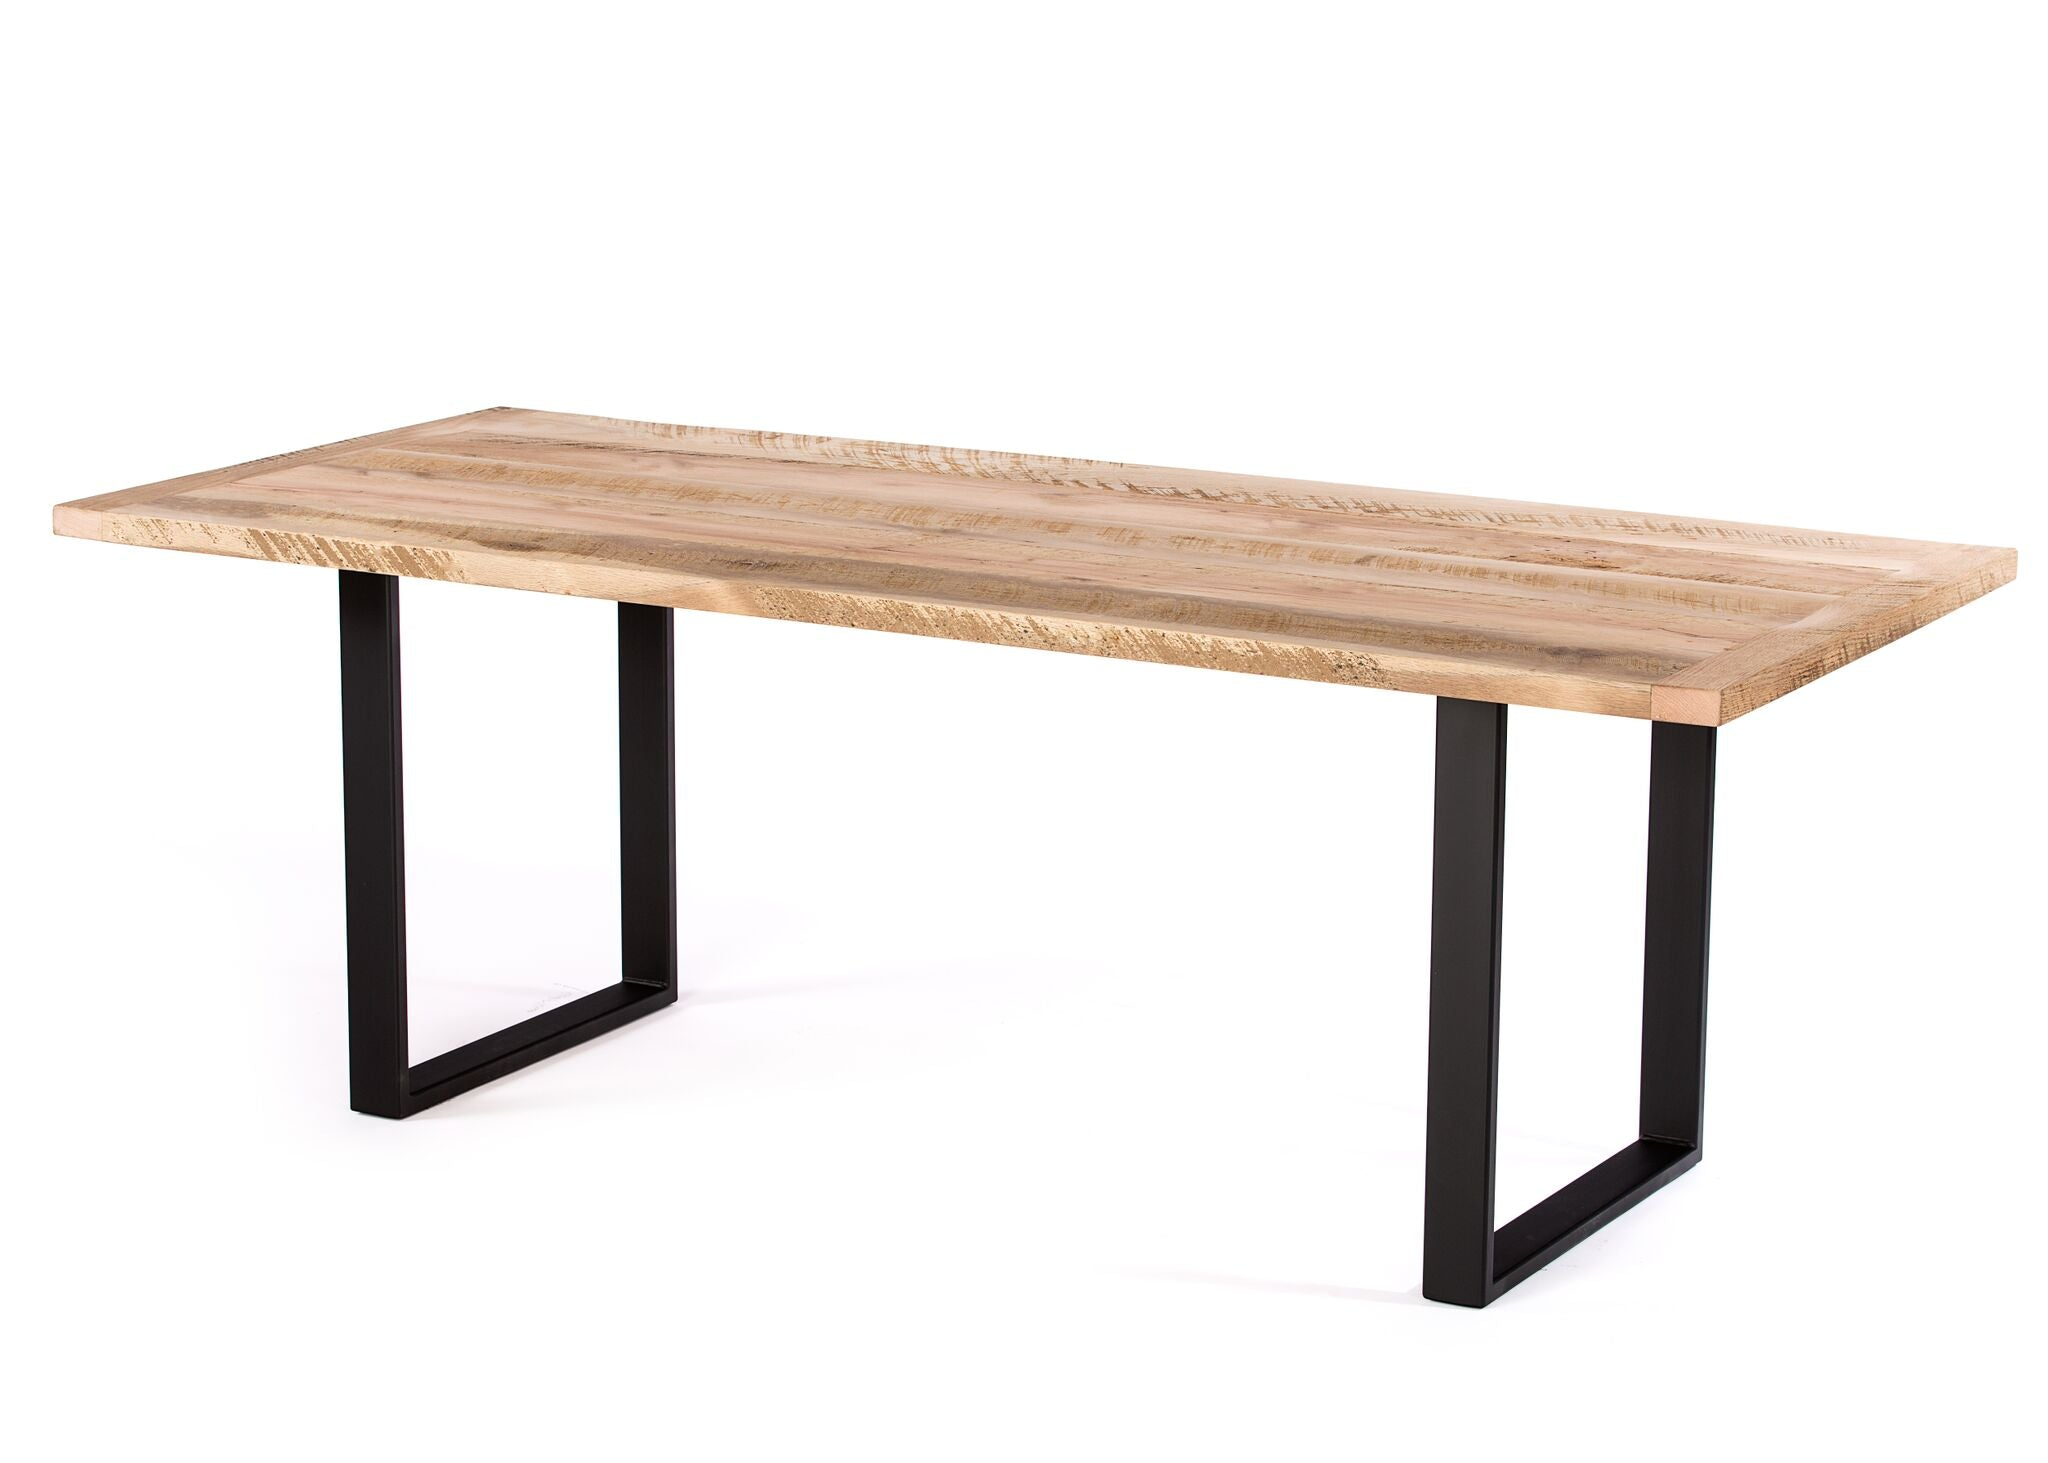 "Wood Tables | Maddox Table | Natural Ash | Black | CUSTOM SIZE 60""L 30""W 30""H 